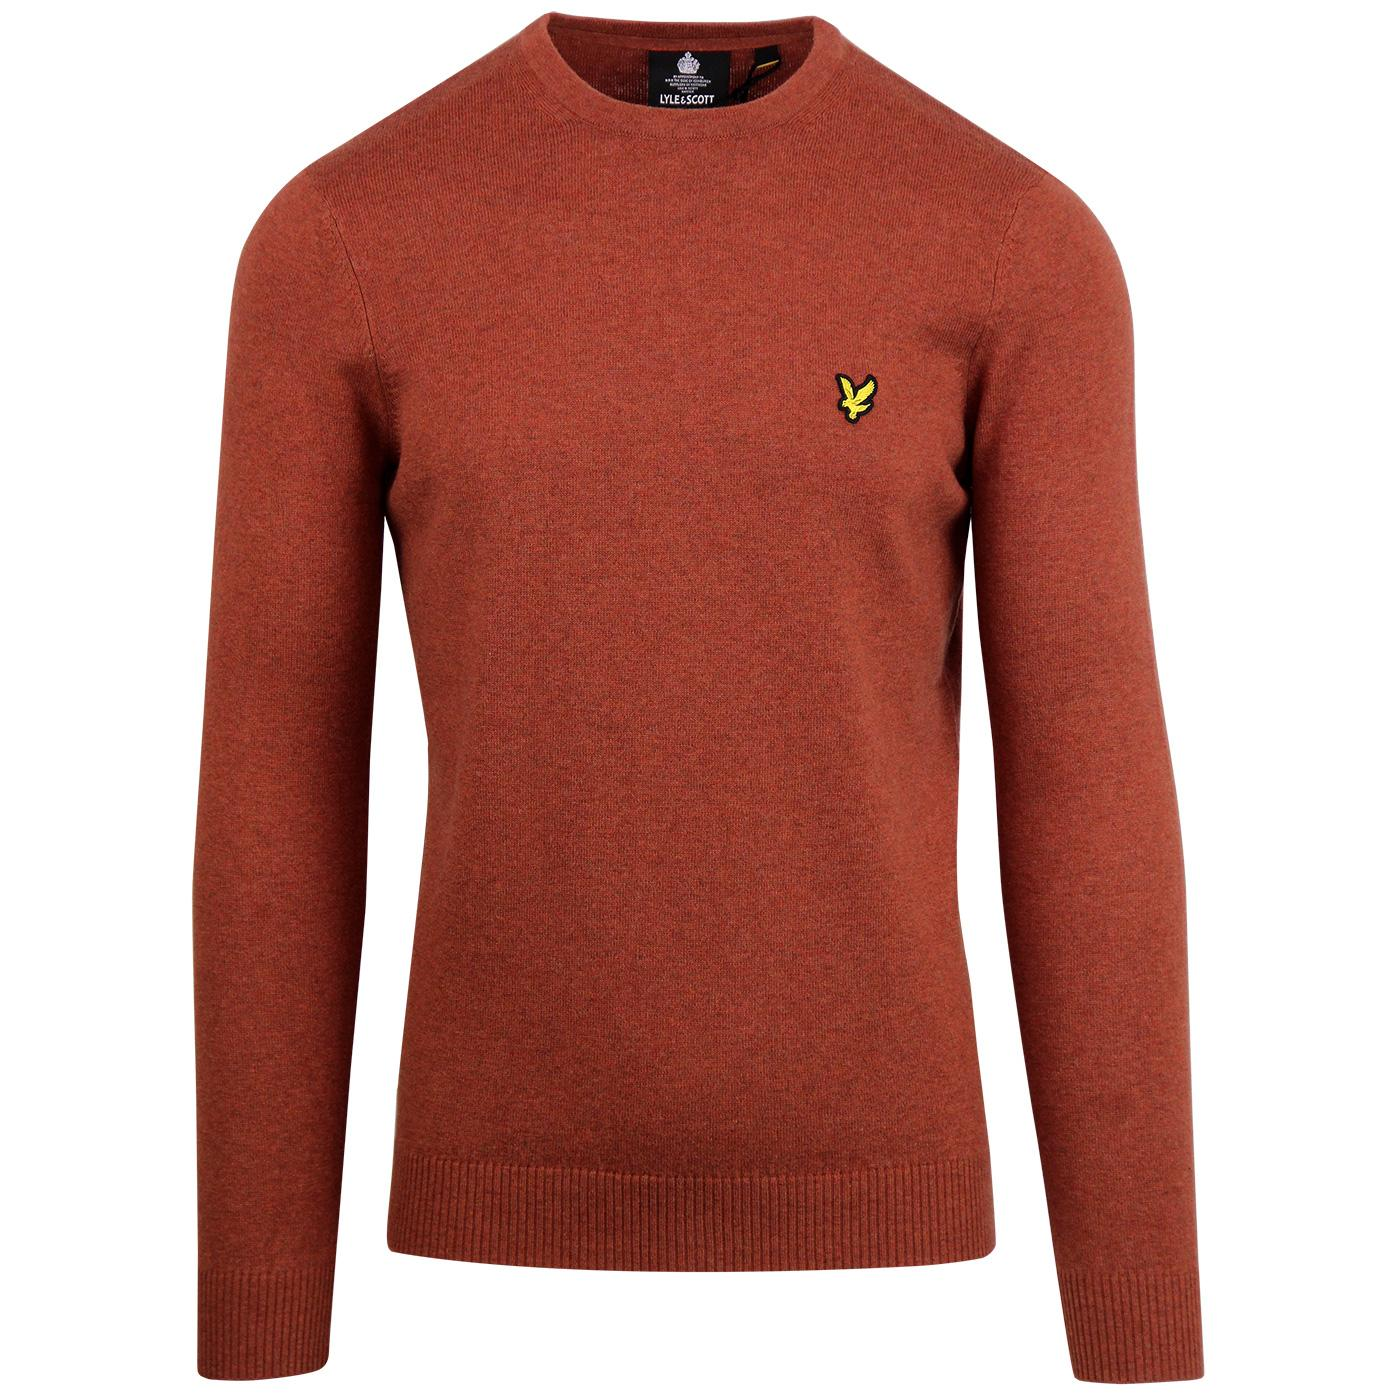 LYLE & SCOTT Merino Blend Knitted Crew Neck Jumper